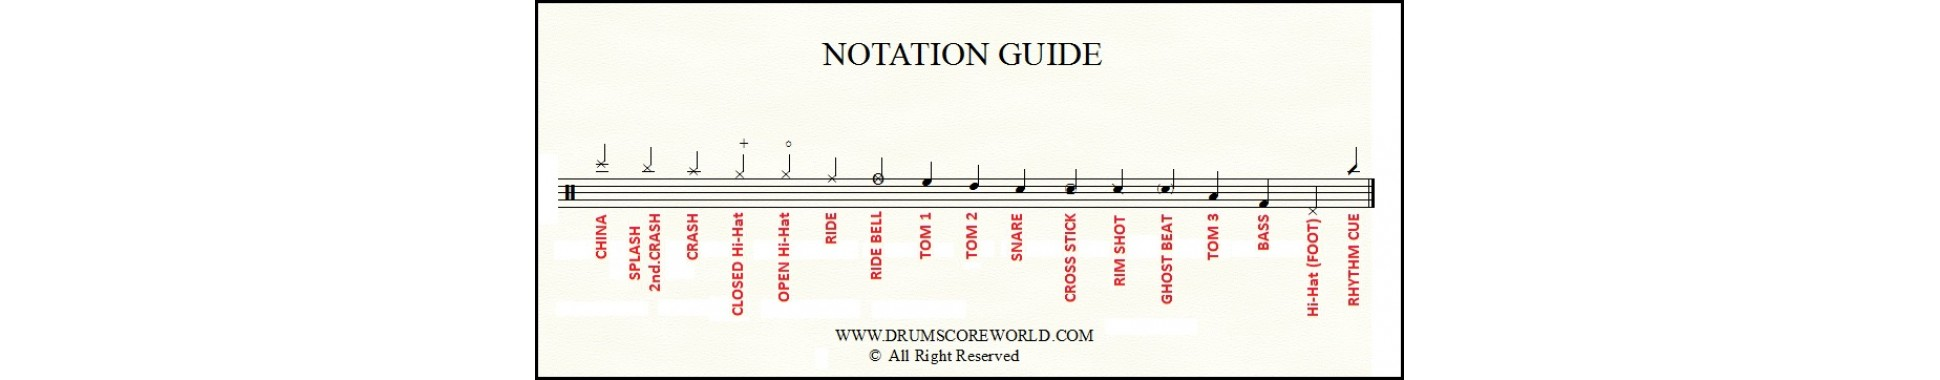 Notation Guide